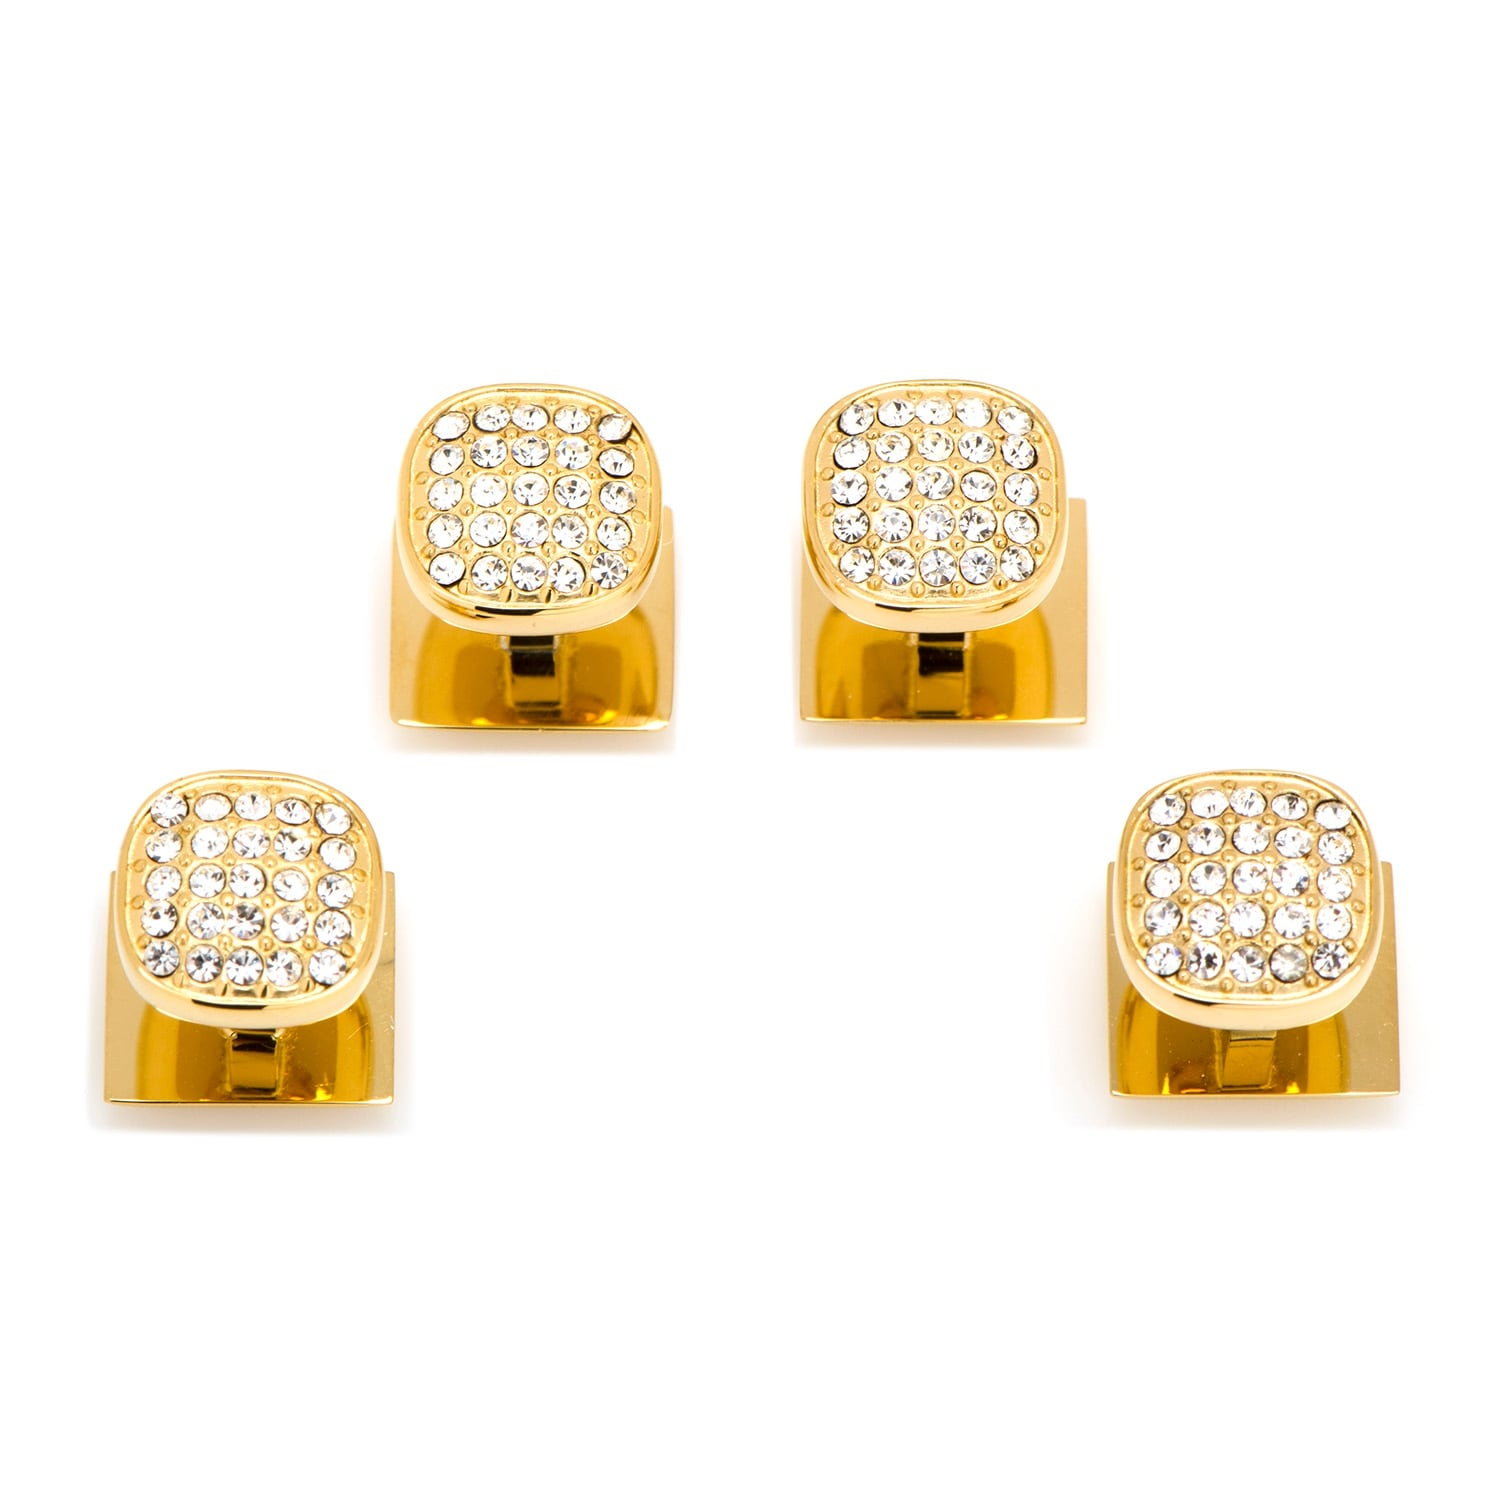 Stainless Steel Gold Plated White Pave Crystal Studs